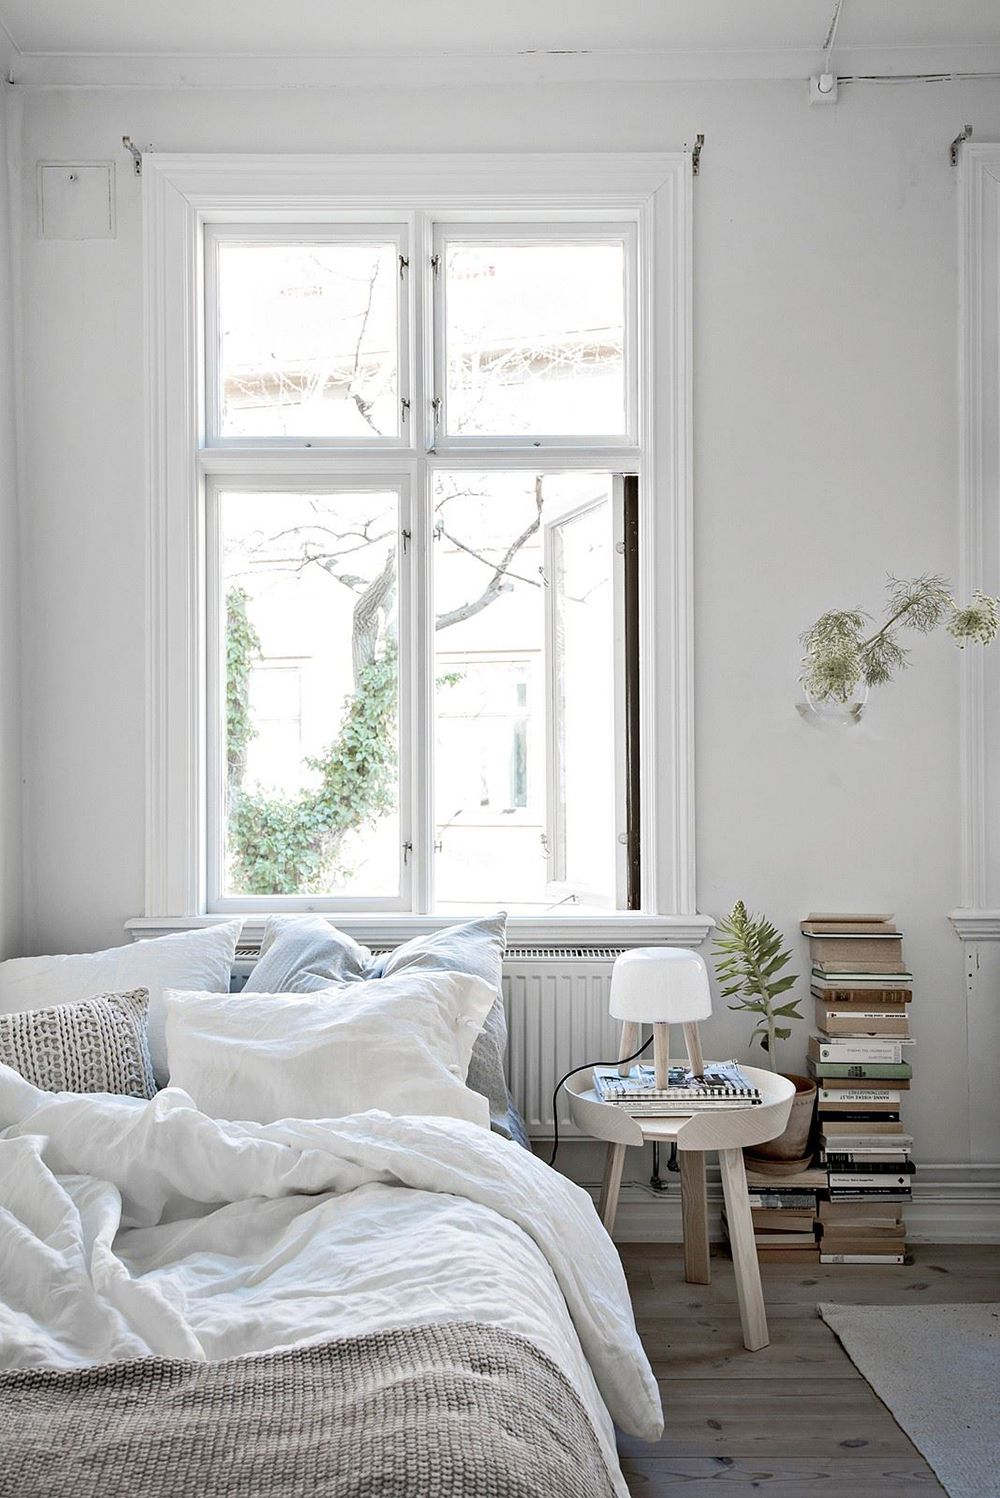 Planete deco bright and airy spring interiors